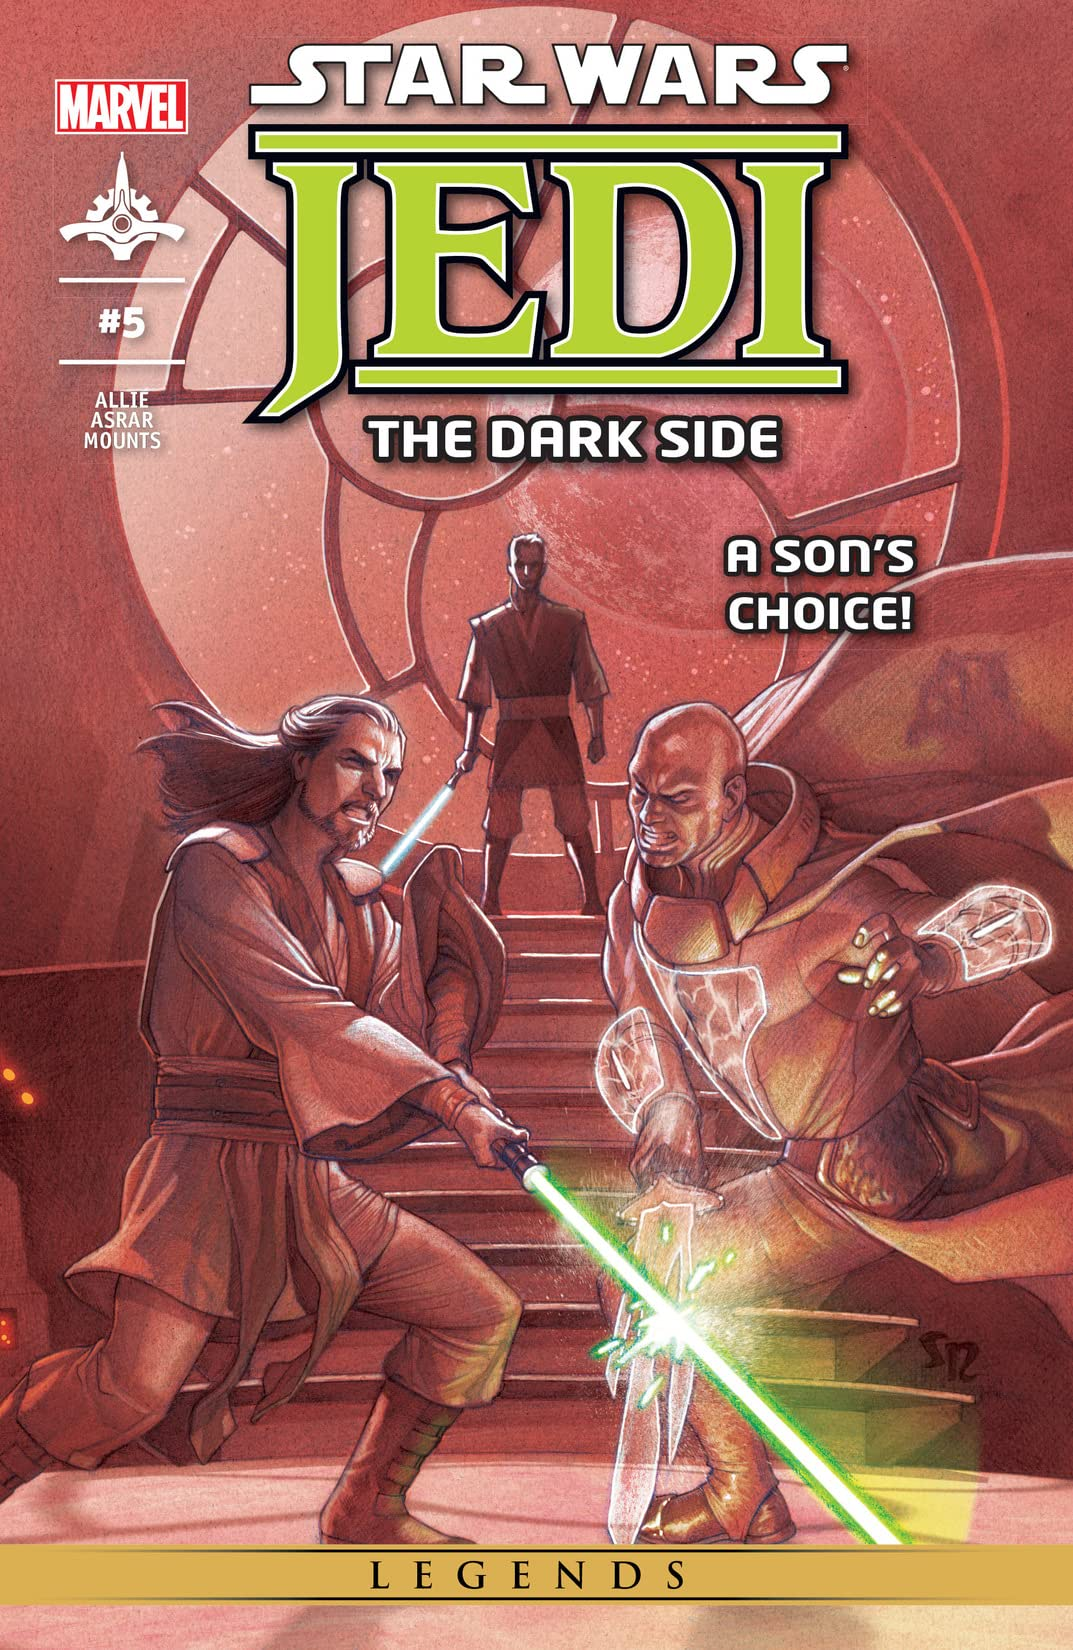 Star Wars: Jedi - The Dark Side (2011) #5 (of 5)